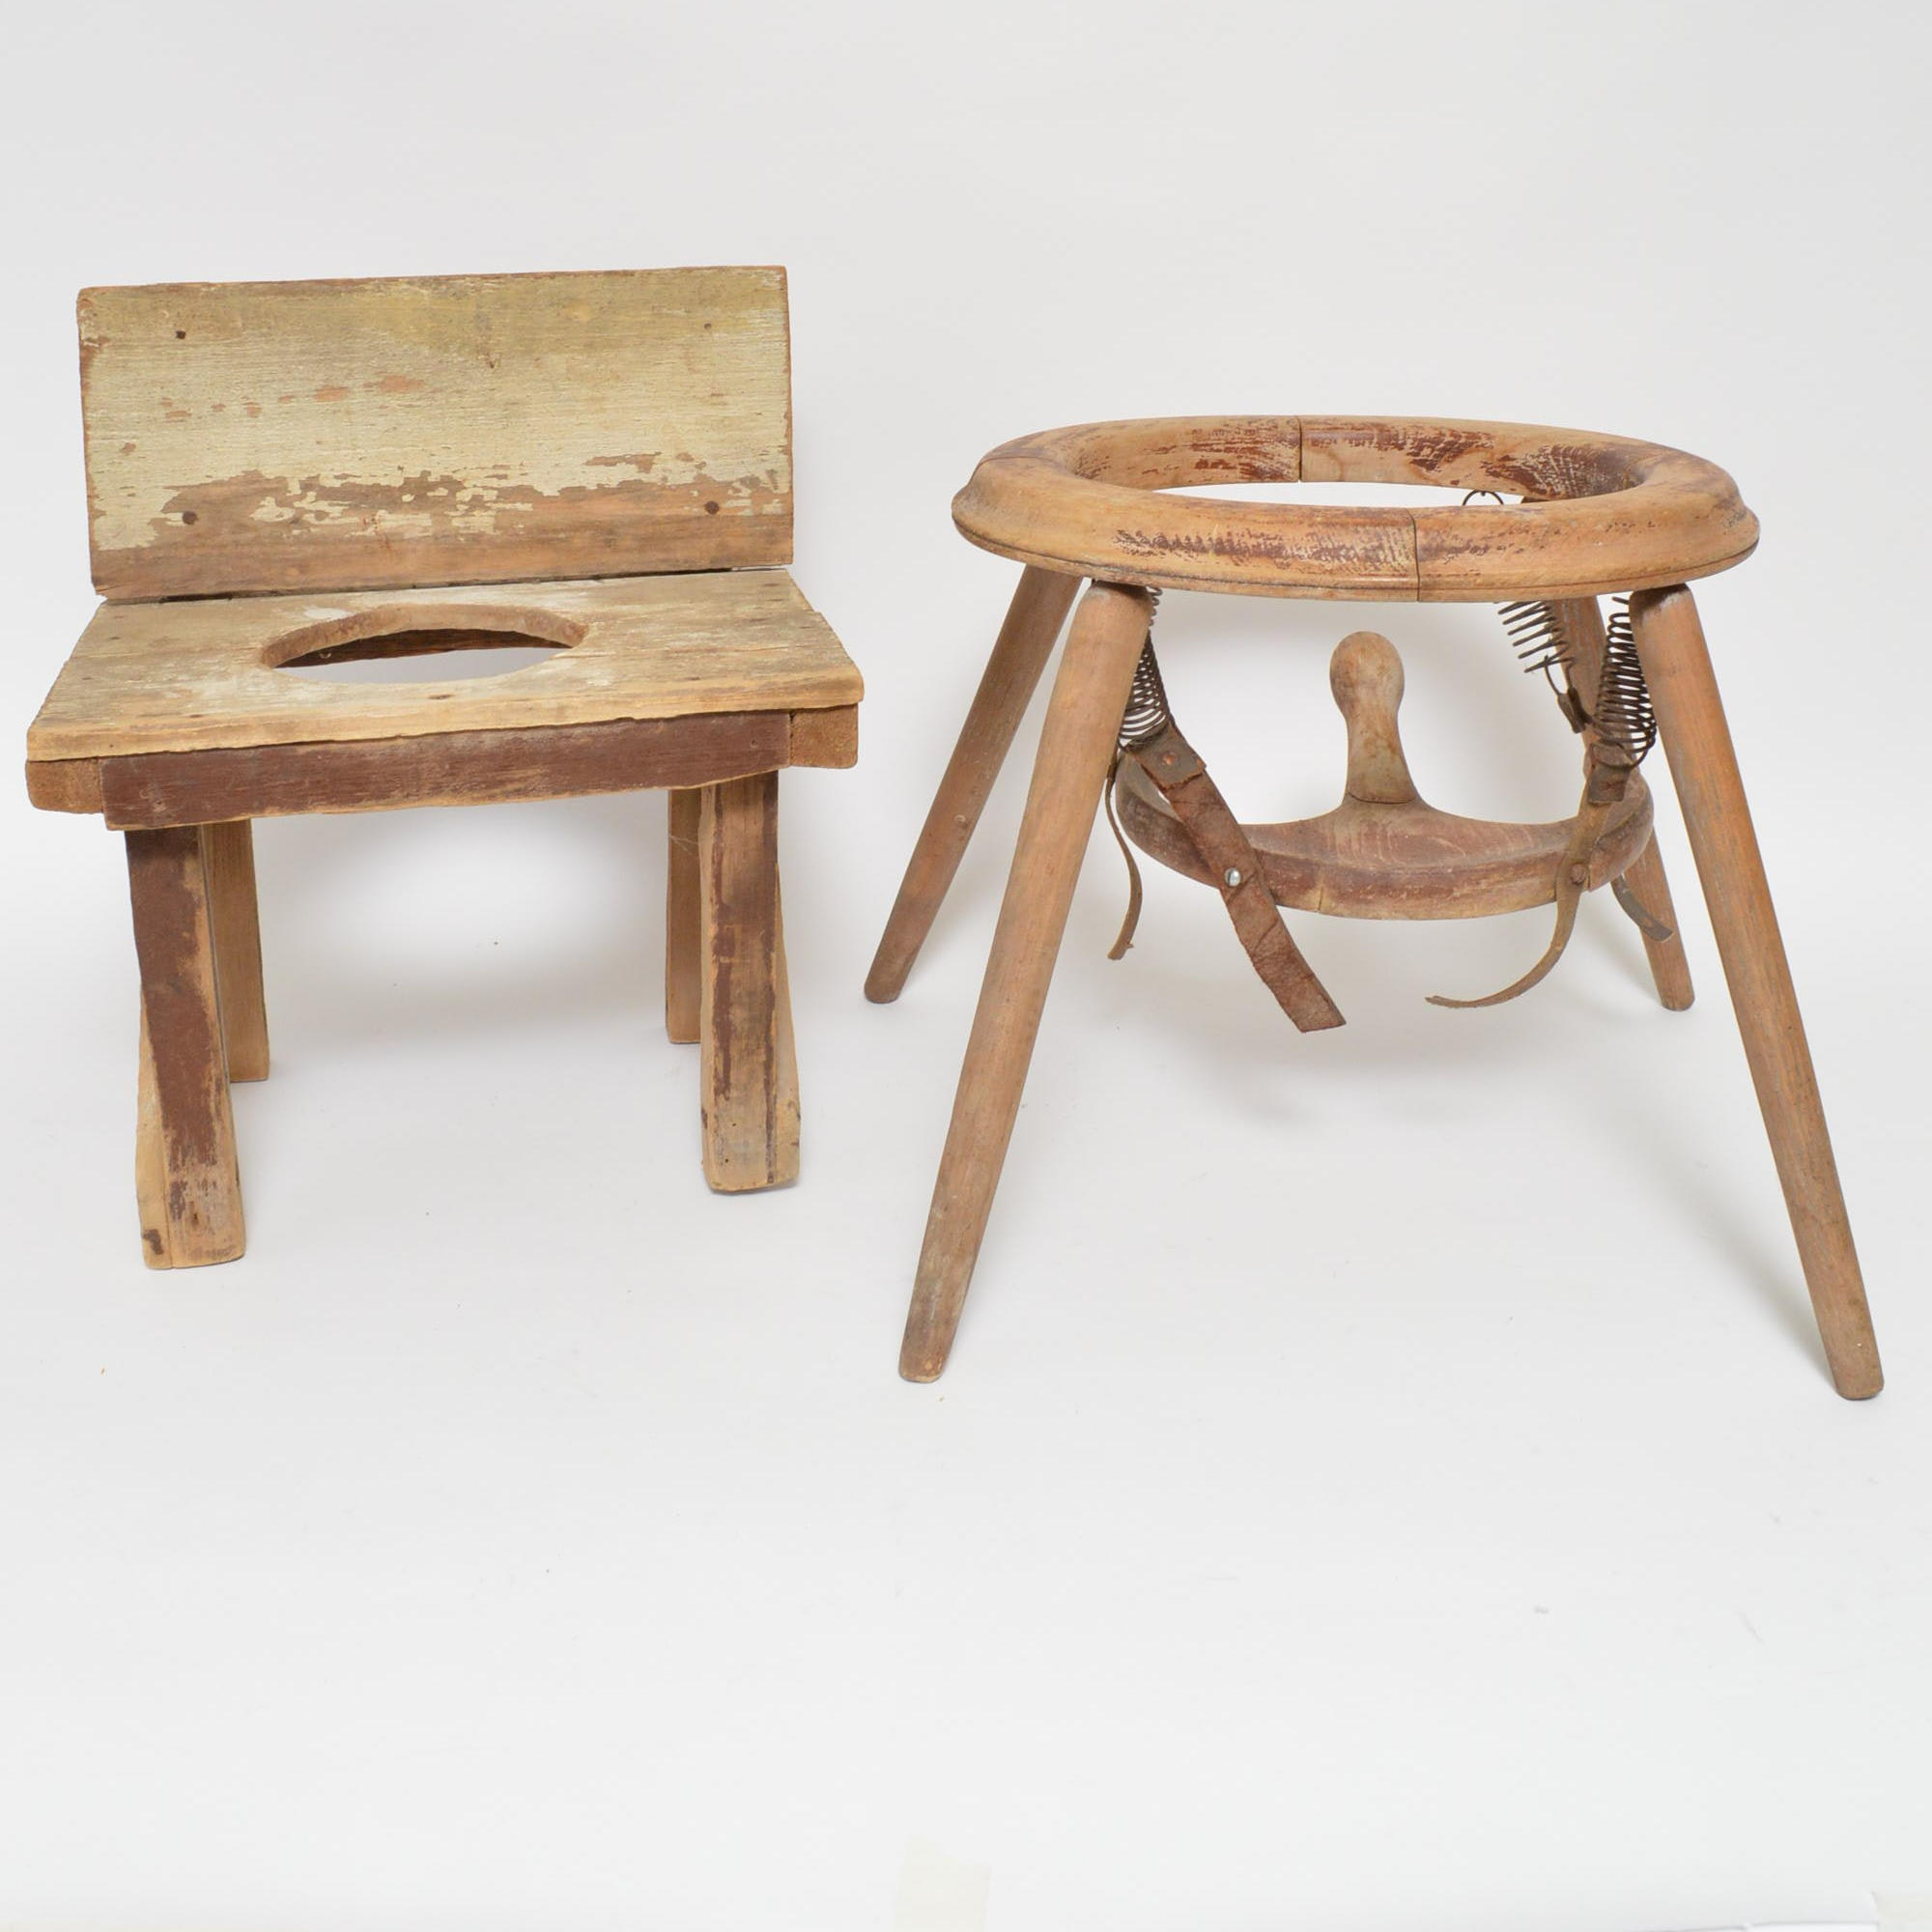 Vintage Child's Commode and Bouncing Chair